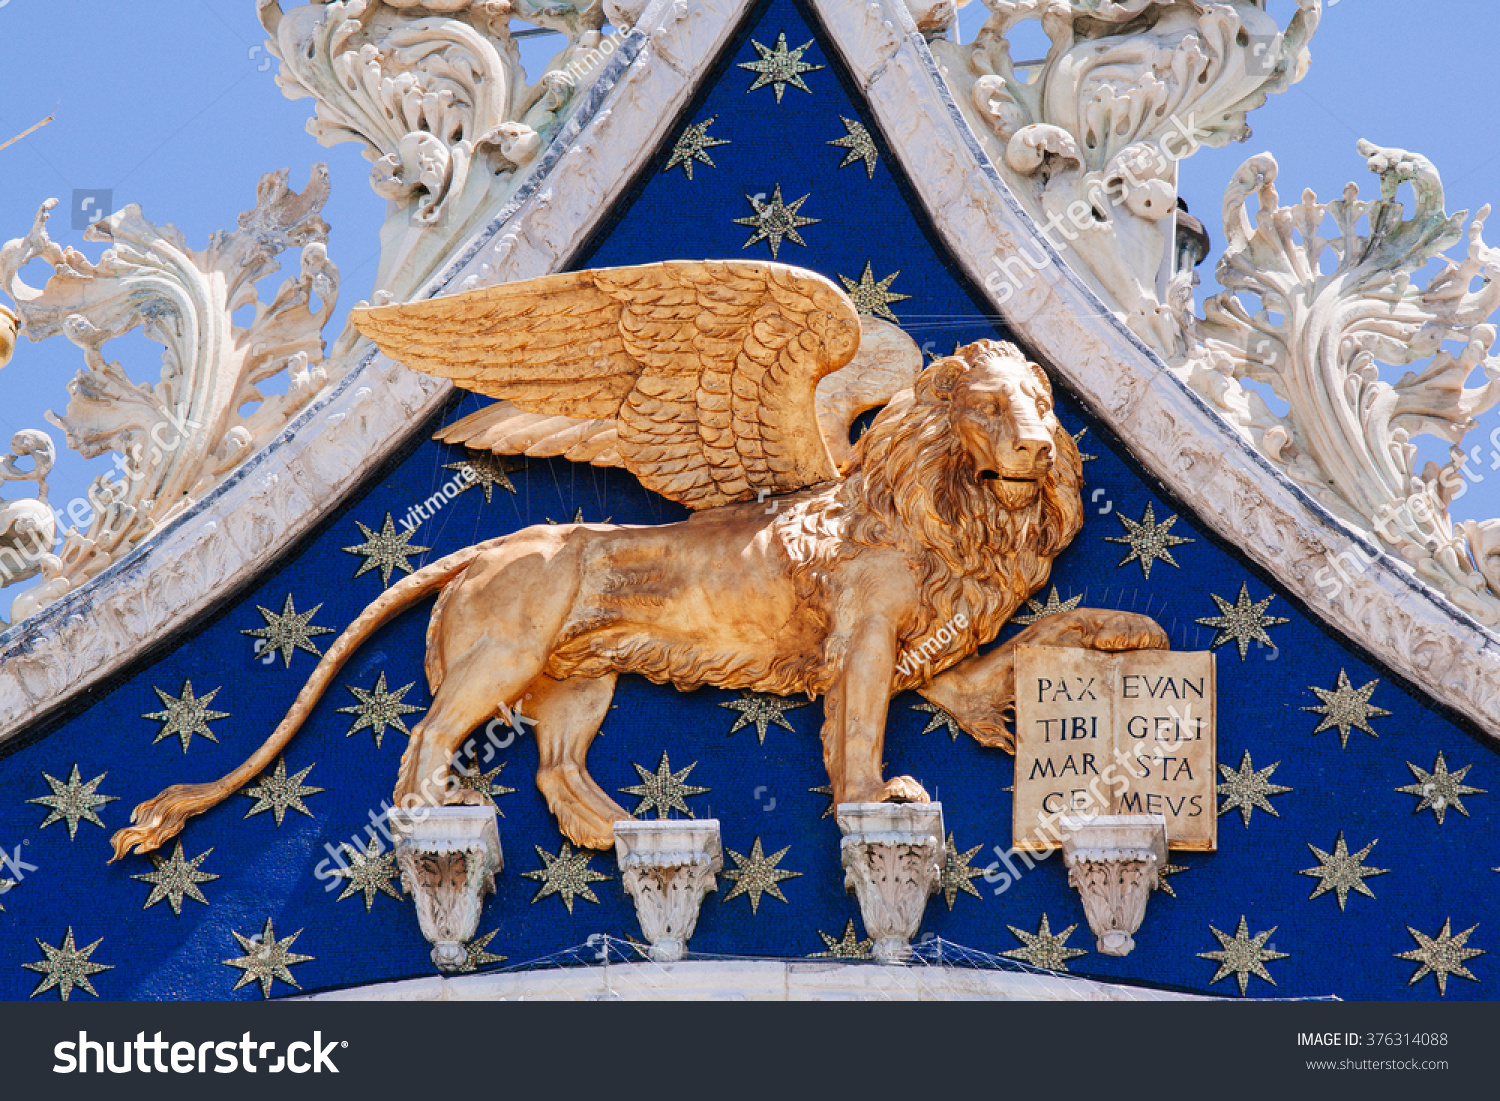 Winged Lion Symbol Venice On Facade Stock Photo Edit Now 376314088